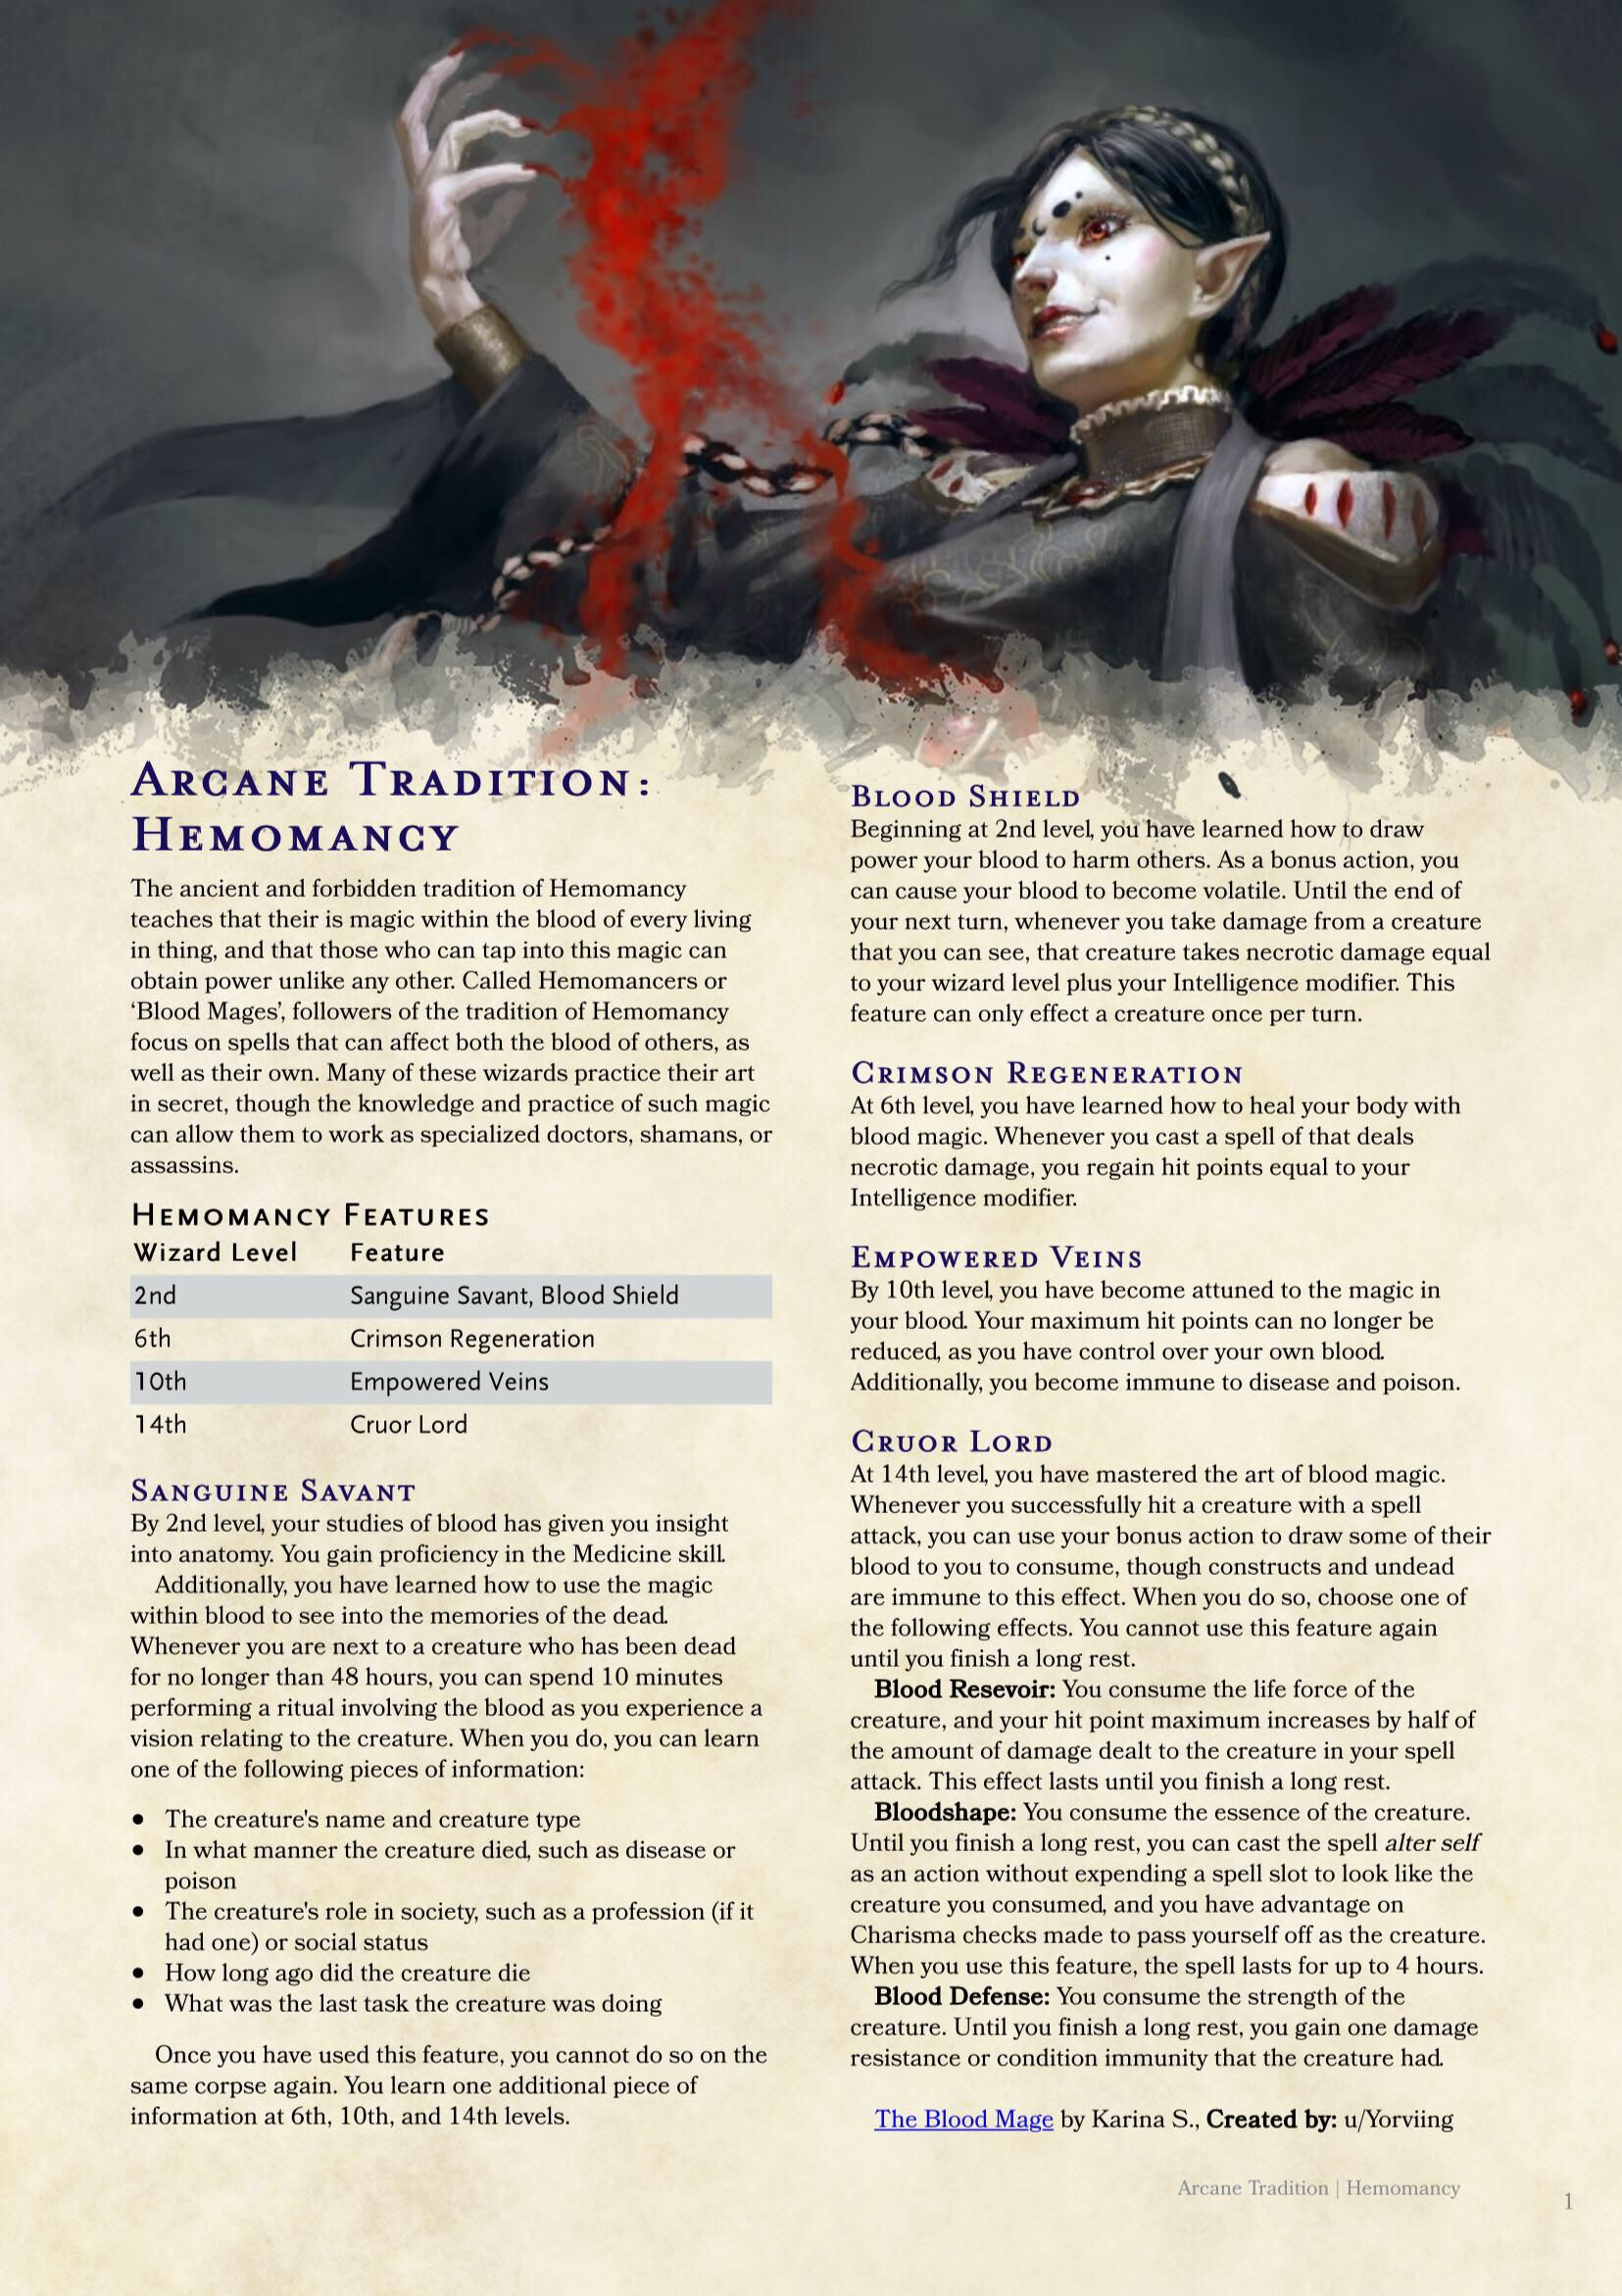 Pin By Kjell Soderlund On Dnd Items Dungeons And Dragons Classes Dungeons And Dragons Races Dnd Classes